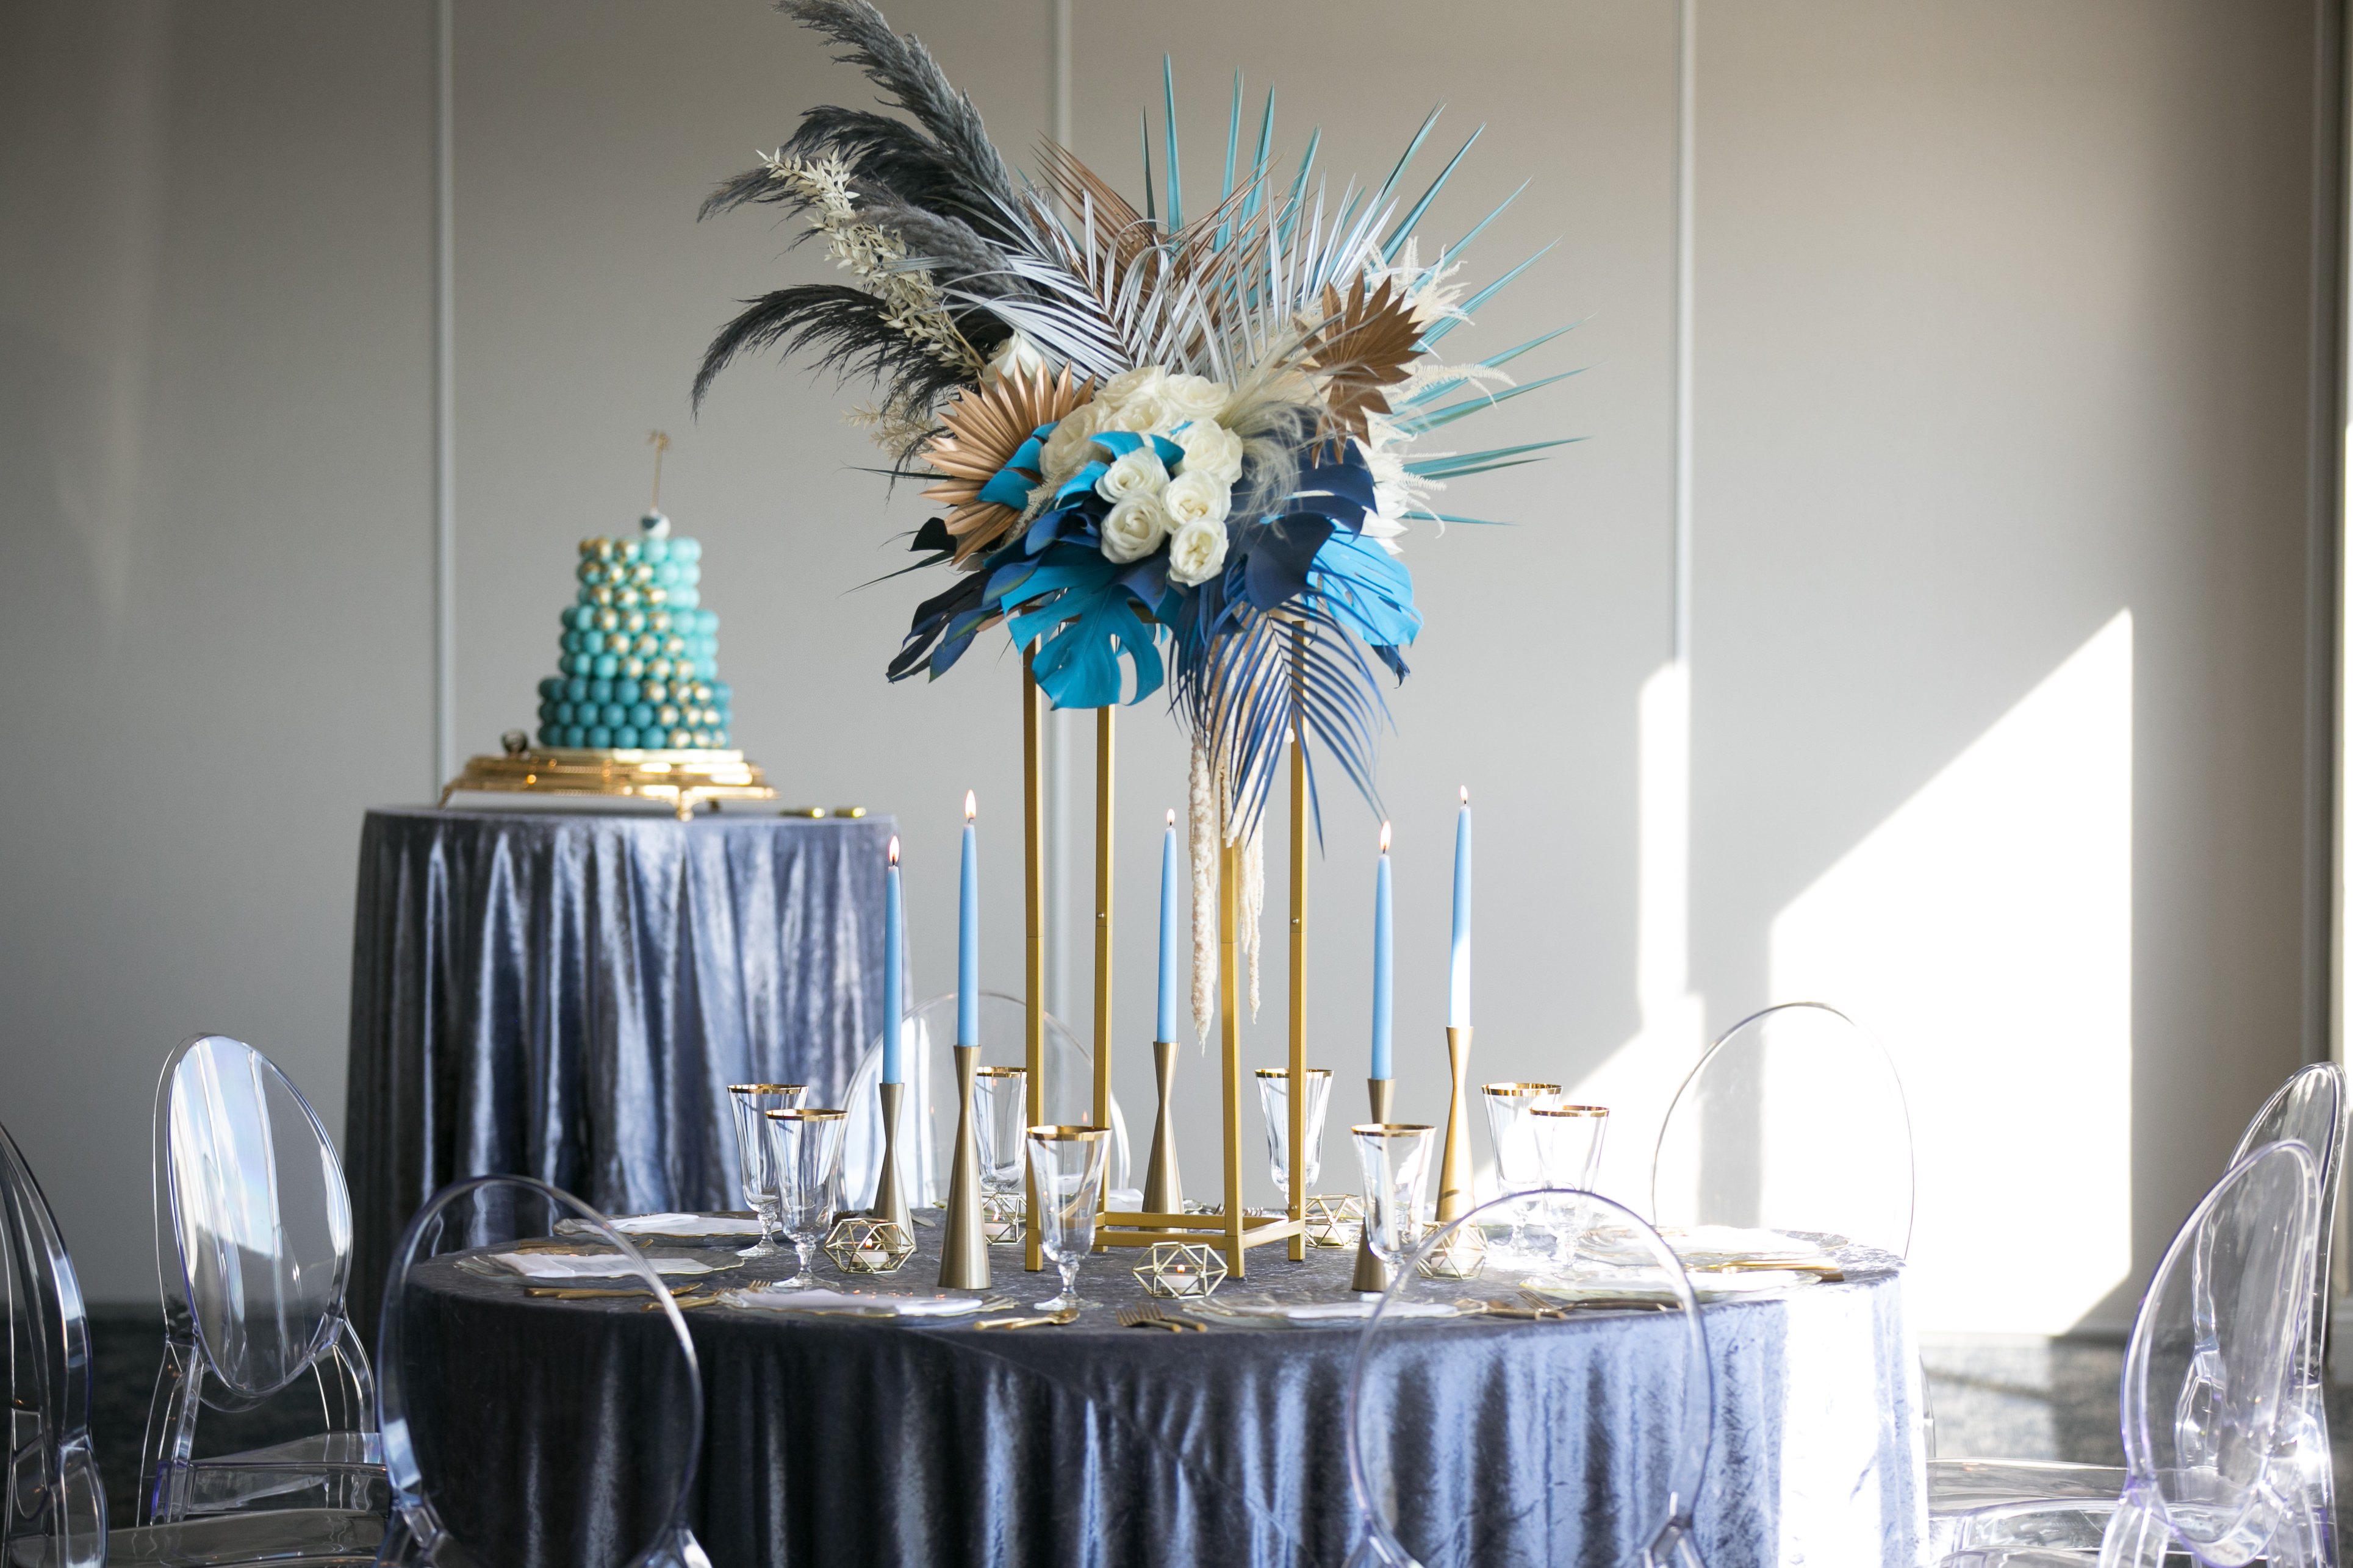 Whimsical Unique Tropical Wedding Reception Decor, Round Tables with Midnight Blue Linen, Tall Gold Candlesticks with Blue Candles, Tall Gold Geometric Stands with White Roses, Blue Monstera and Palm Tree Leaves and Feathers and Ghost Chair Seating | Tampa Wedding Chair Rentals Gabro Event Services | Velvet Navy Blue Table Linens Kate Ryan Event Rentals | Wedding Photographer Carrie Wildes Photography | Wedding Planner and Florist John Campbell Weddings | Tampa Wedding Venue Centre Club